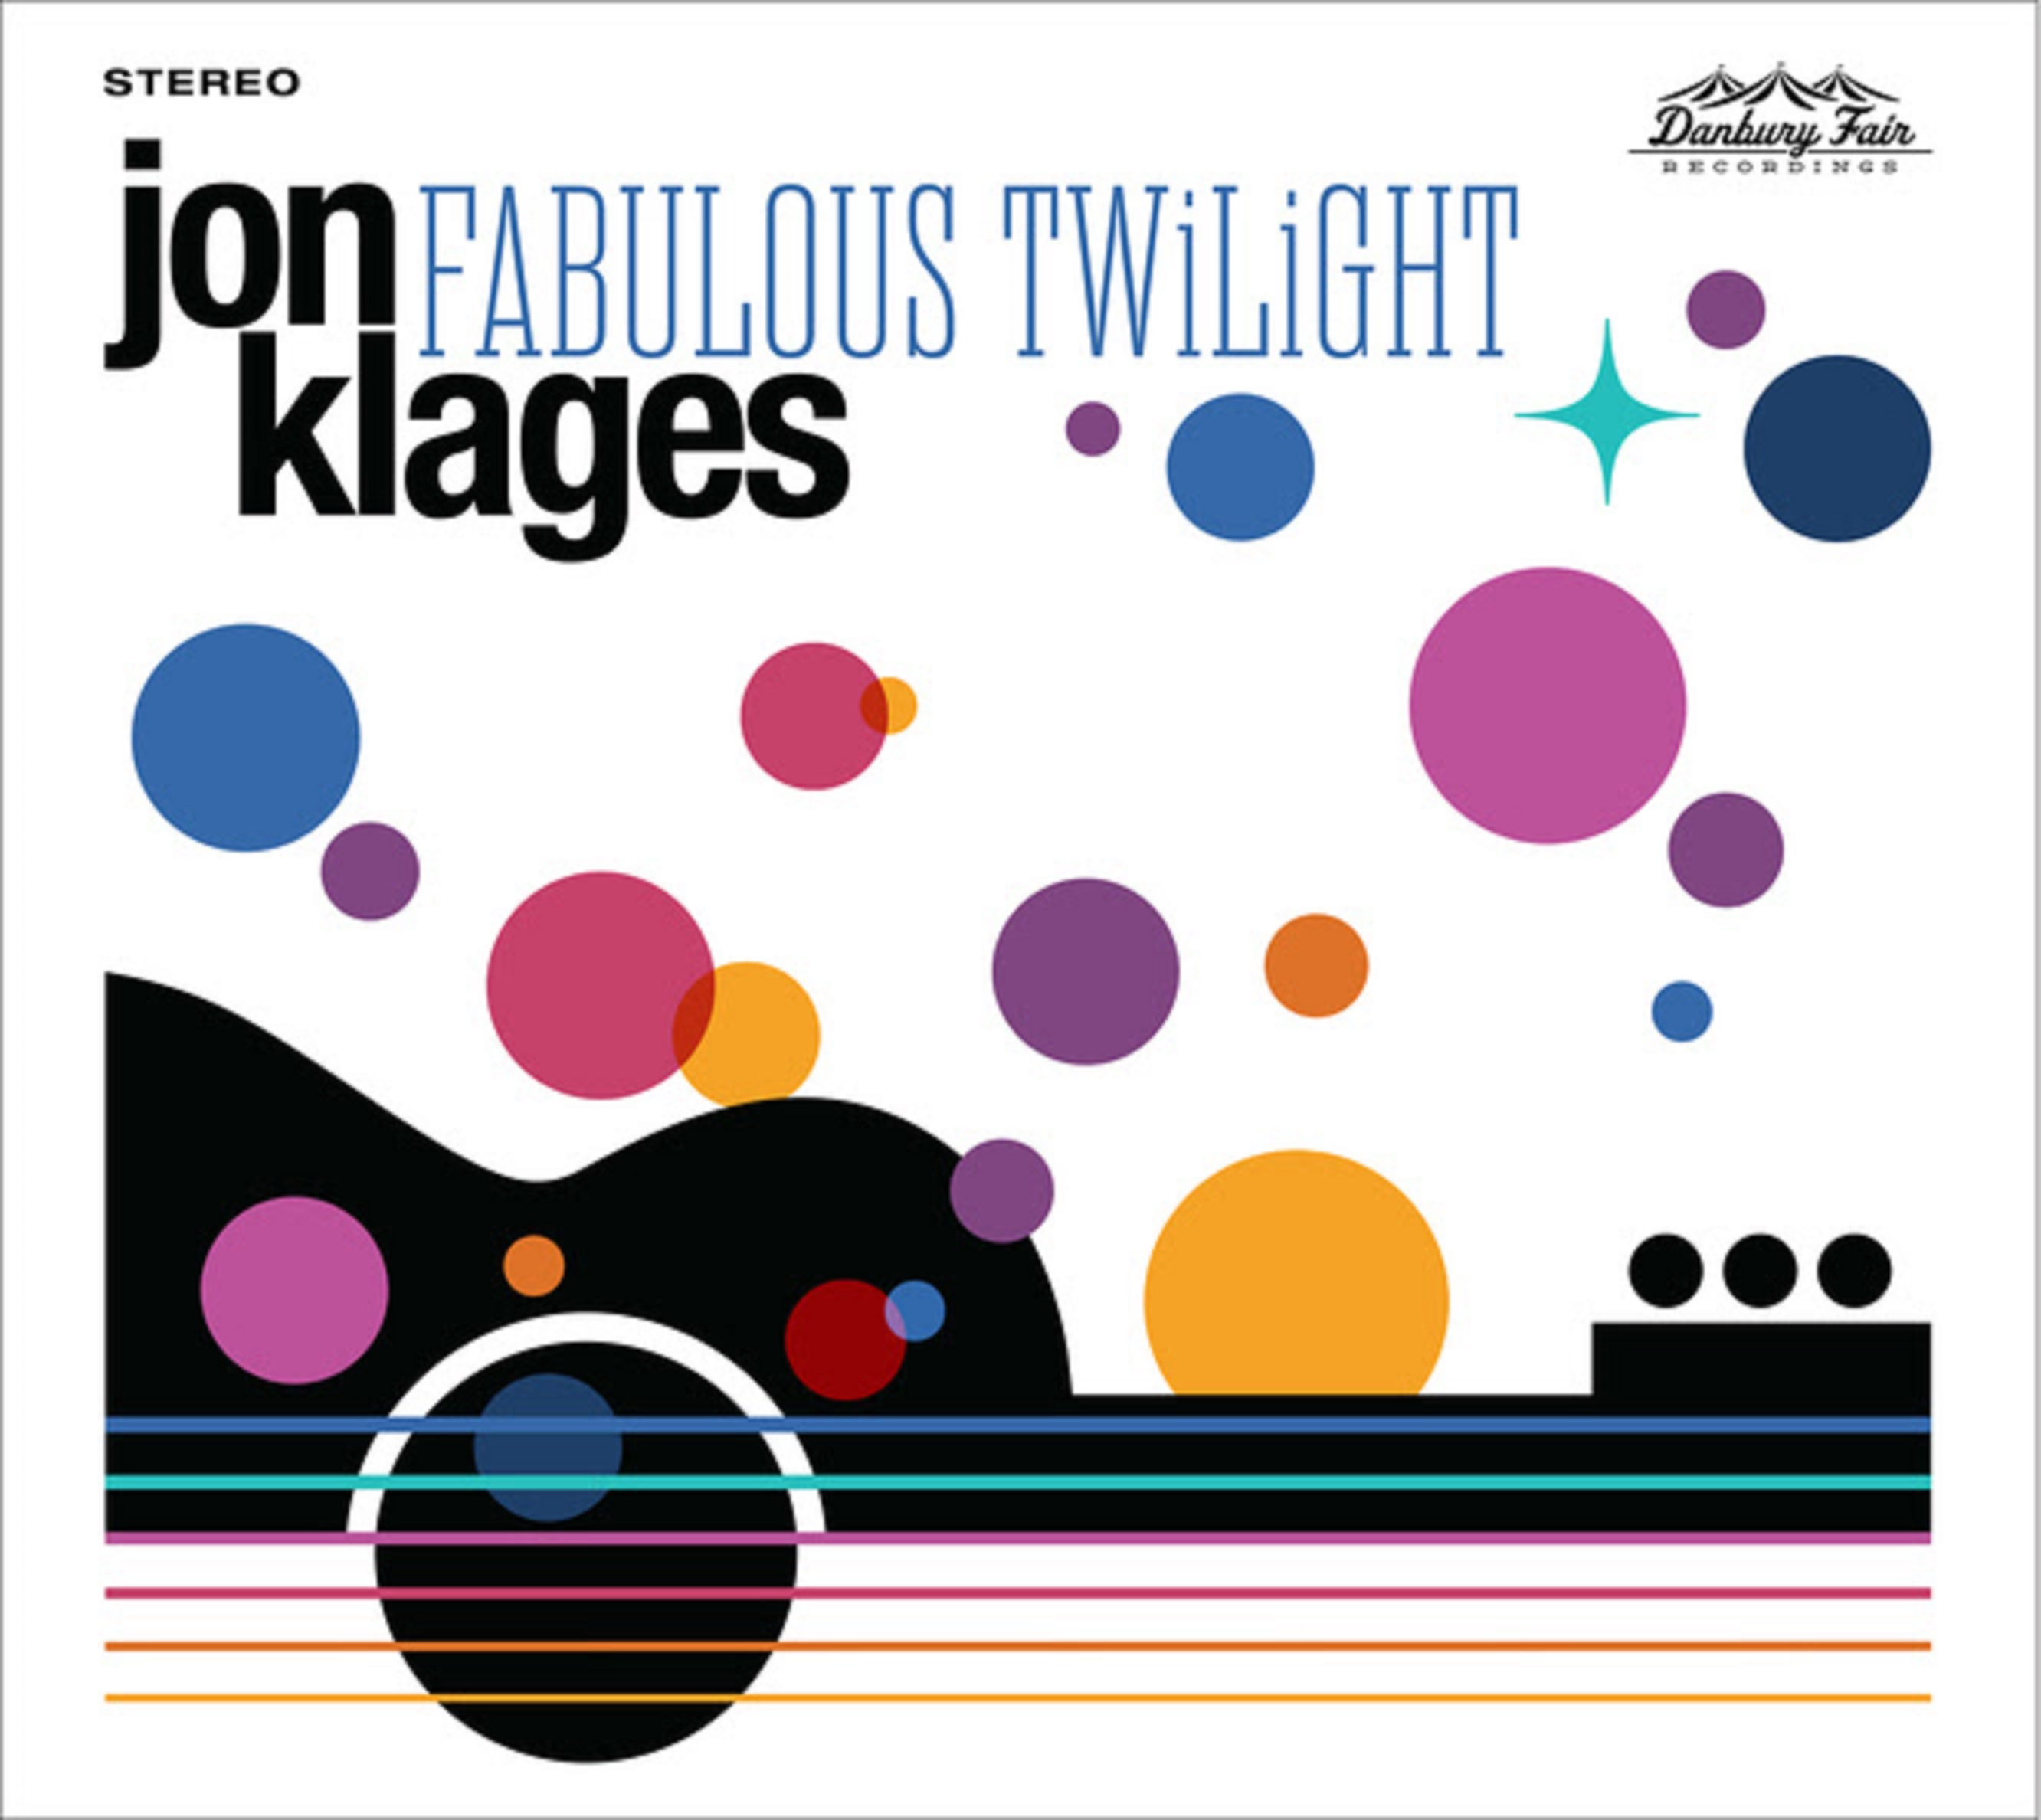 Jon Klages shines with 'Fabulous Twilight' album out April 1